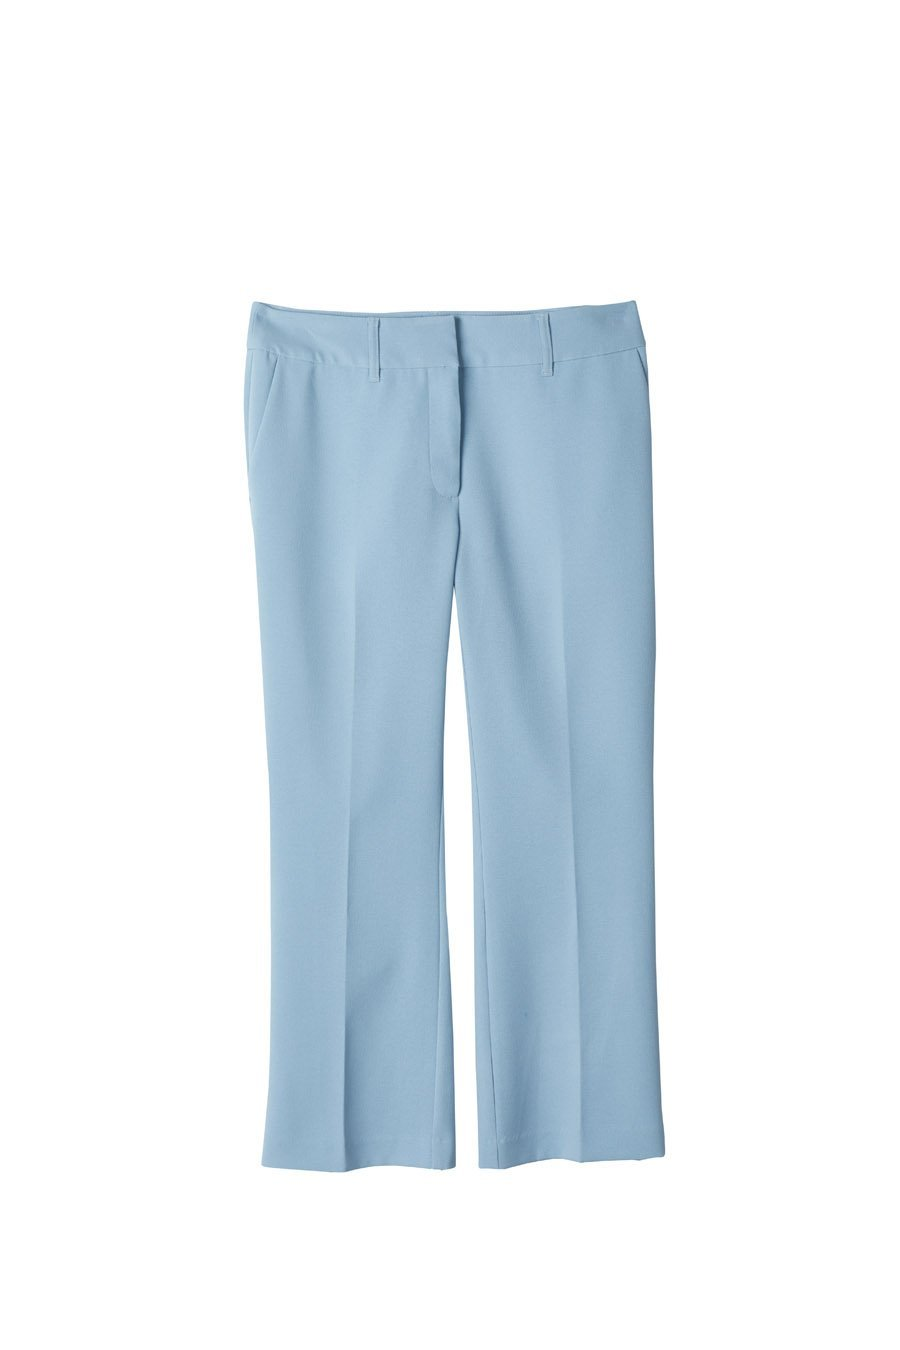 BRYDGES TROUSERS - LIGHT BLUE Trousers Stylein